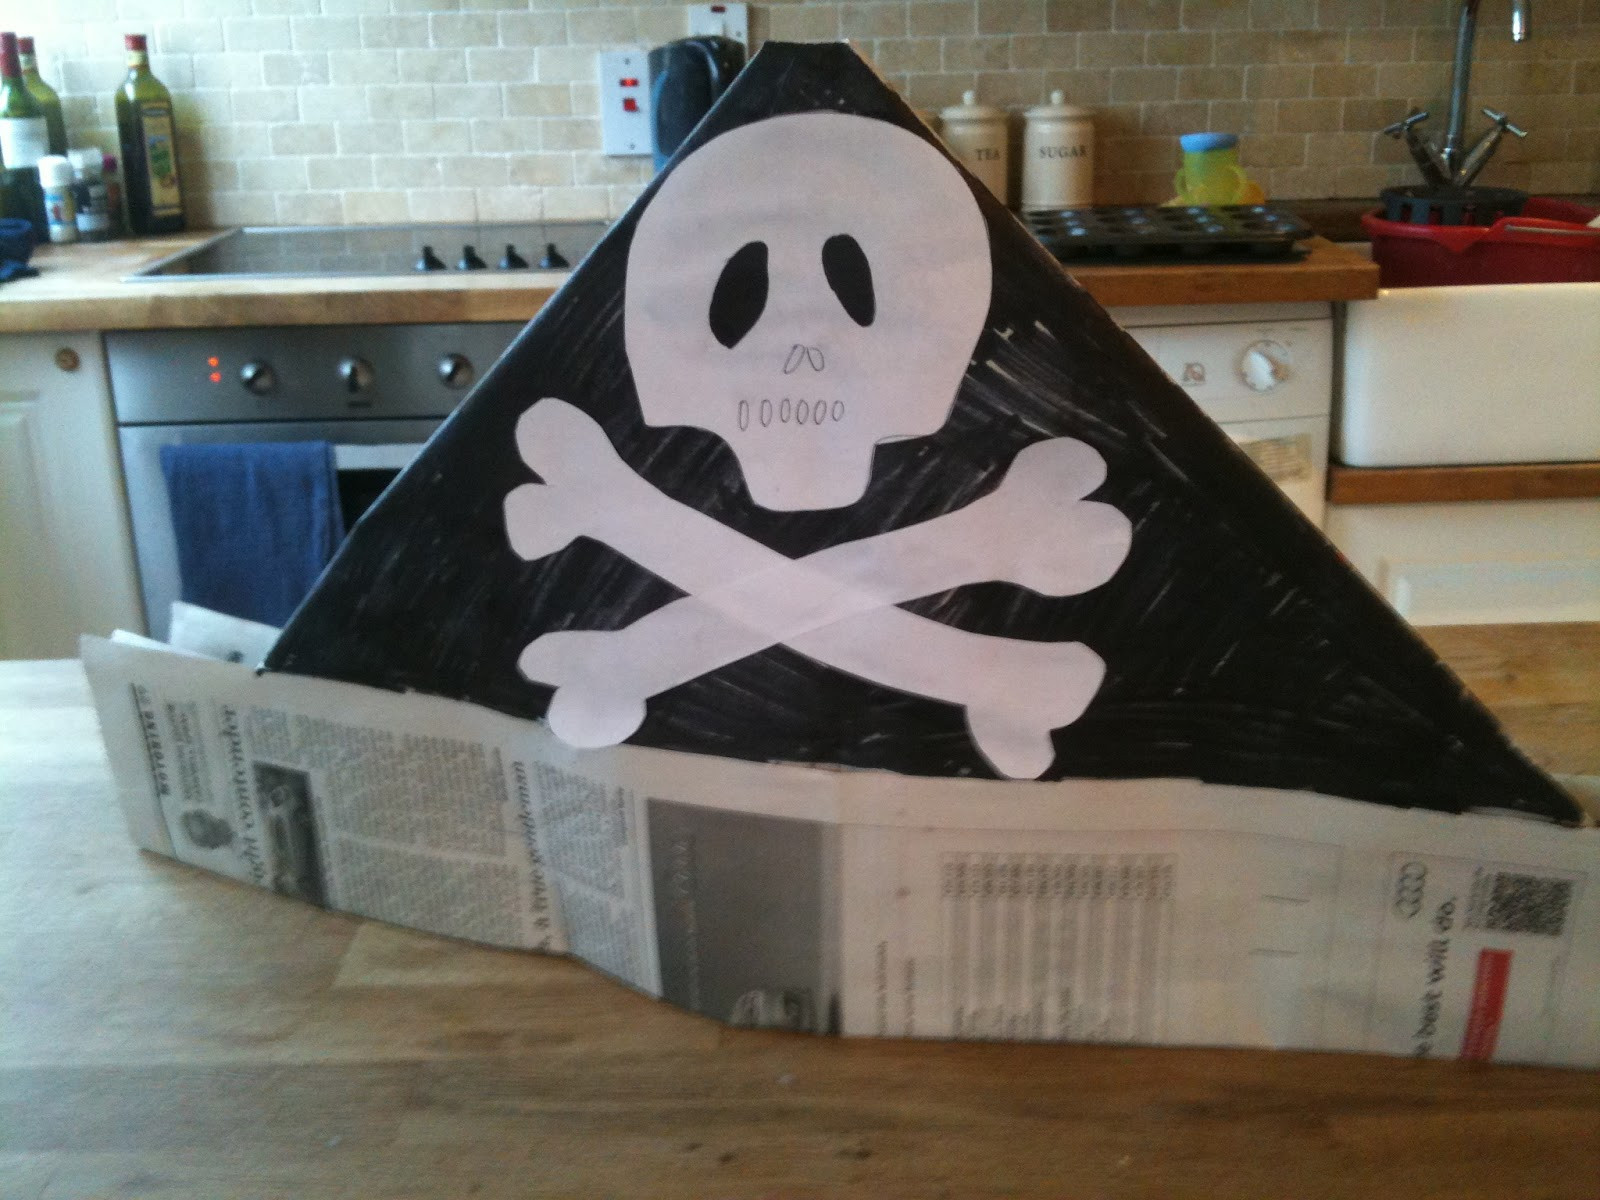 Best ideas about DIY Pirate Hat . Save or Pin How to Make a DIY Pirate Hat Now.